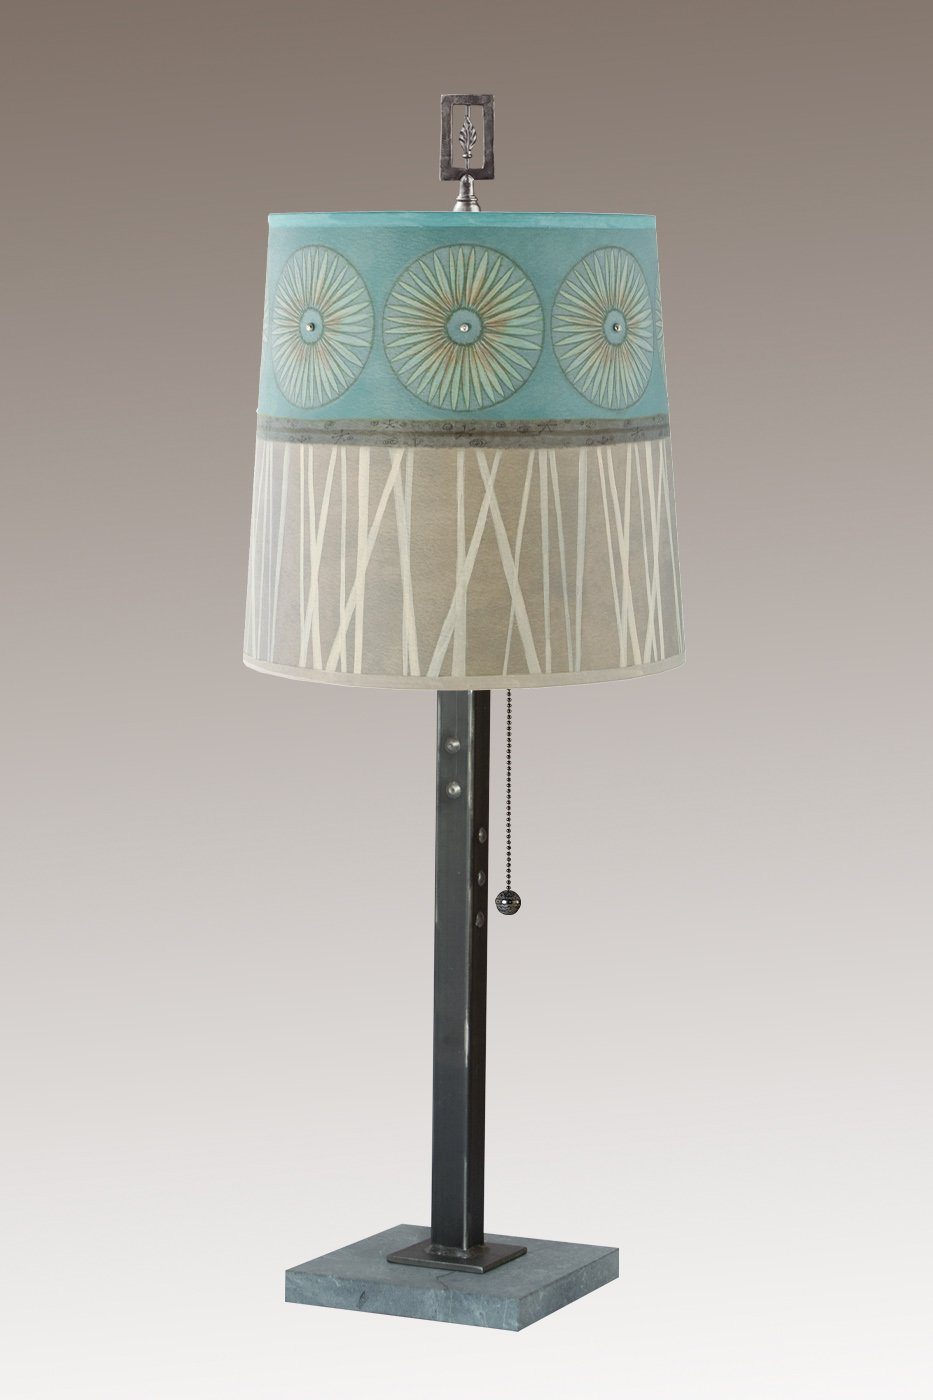 Steel Table Lamp on Italian Marble Base with Small Drum Shade in Pool